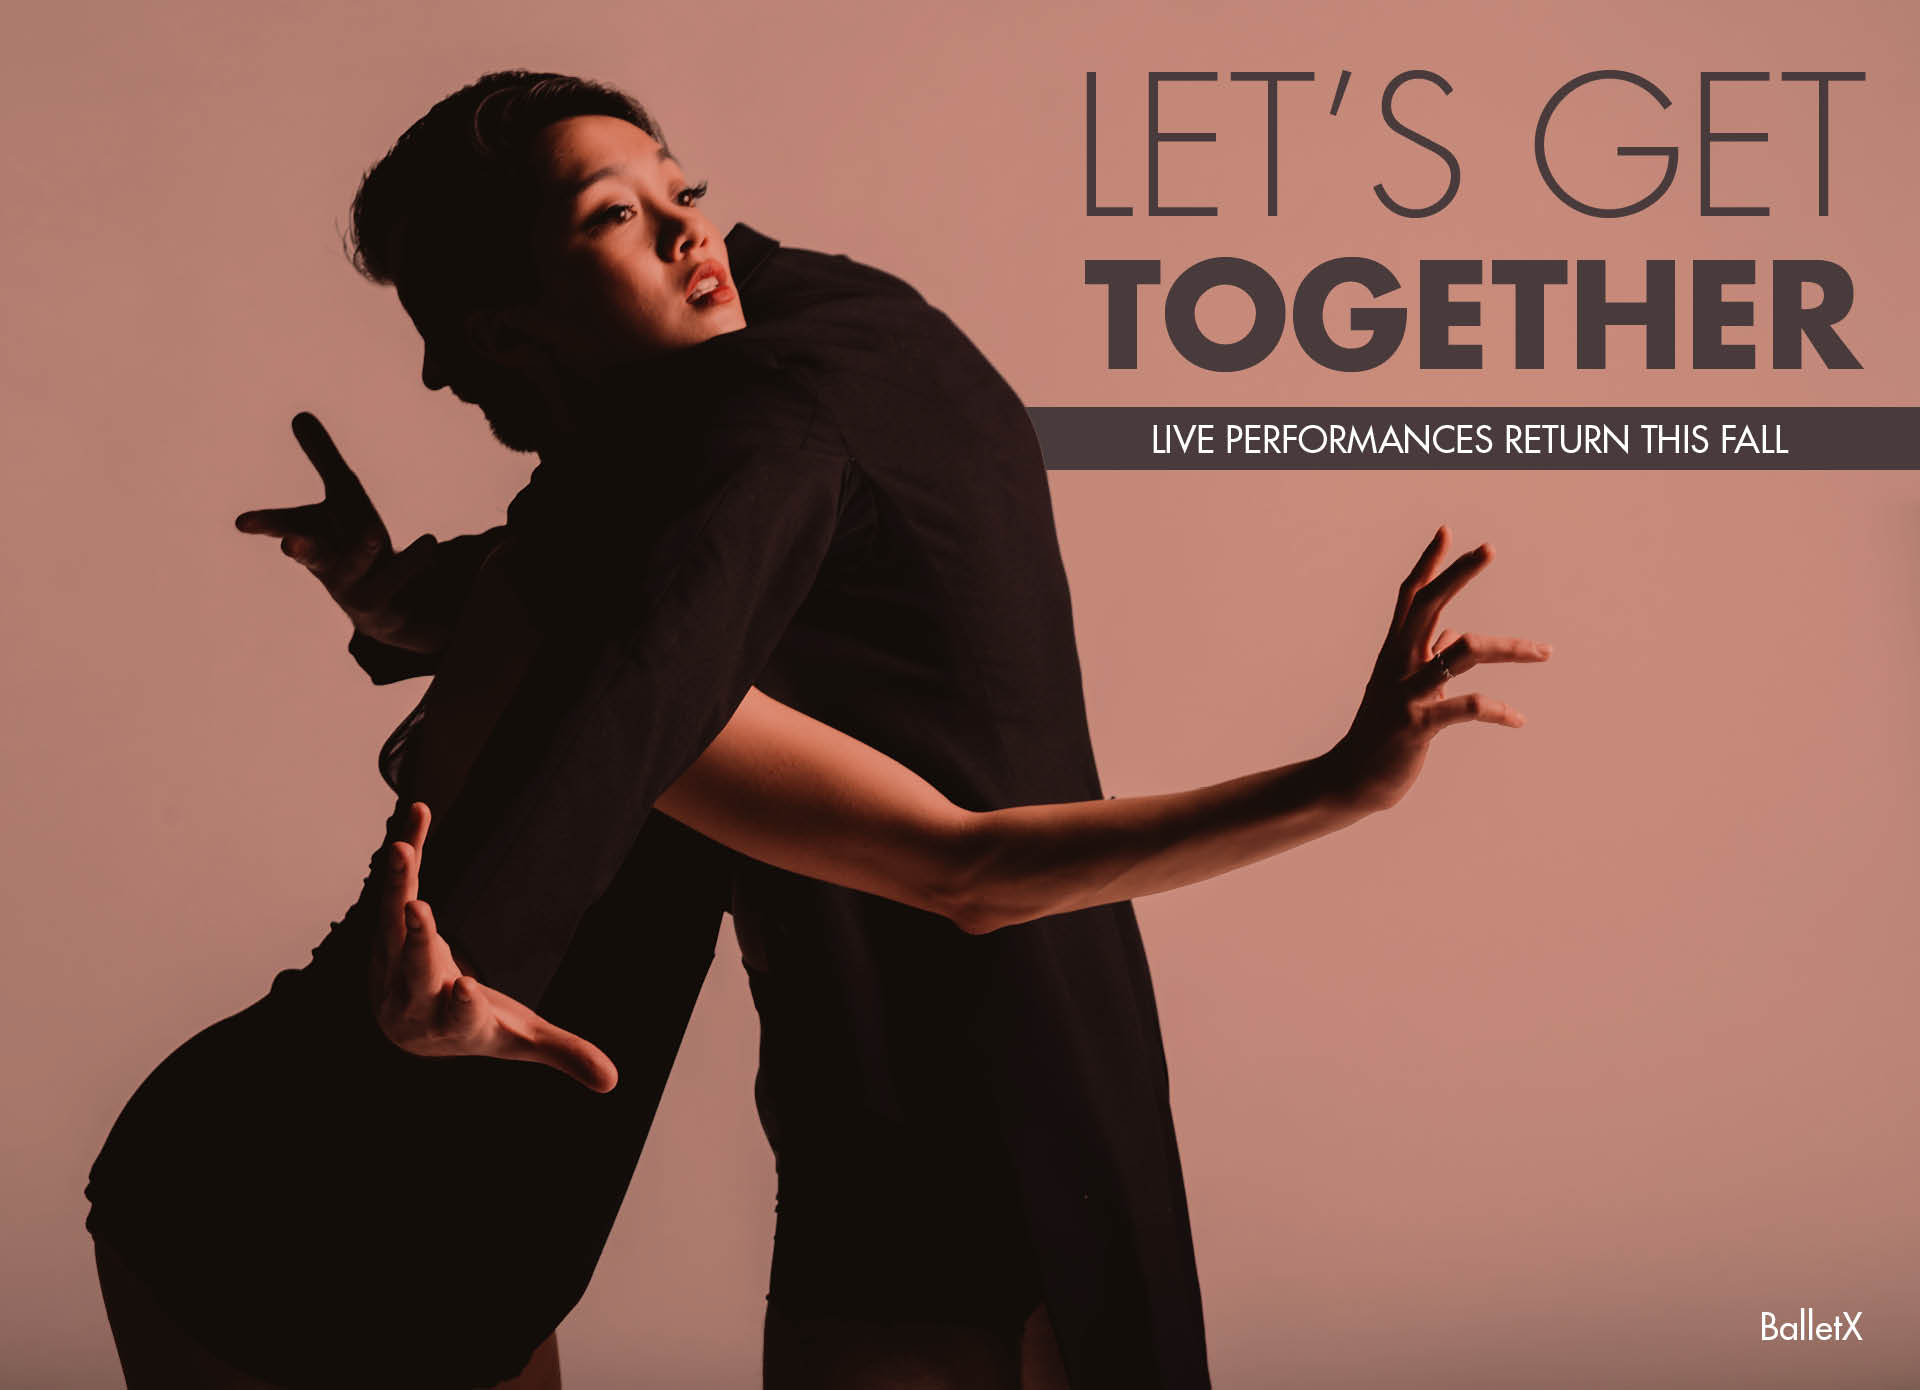 Let's get together: Live performances return this fall